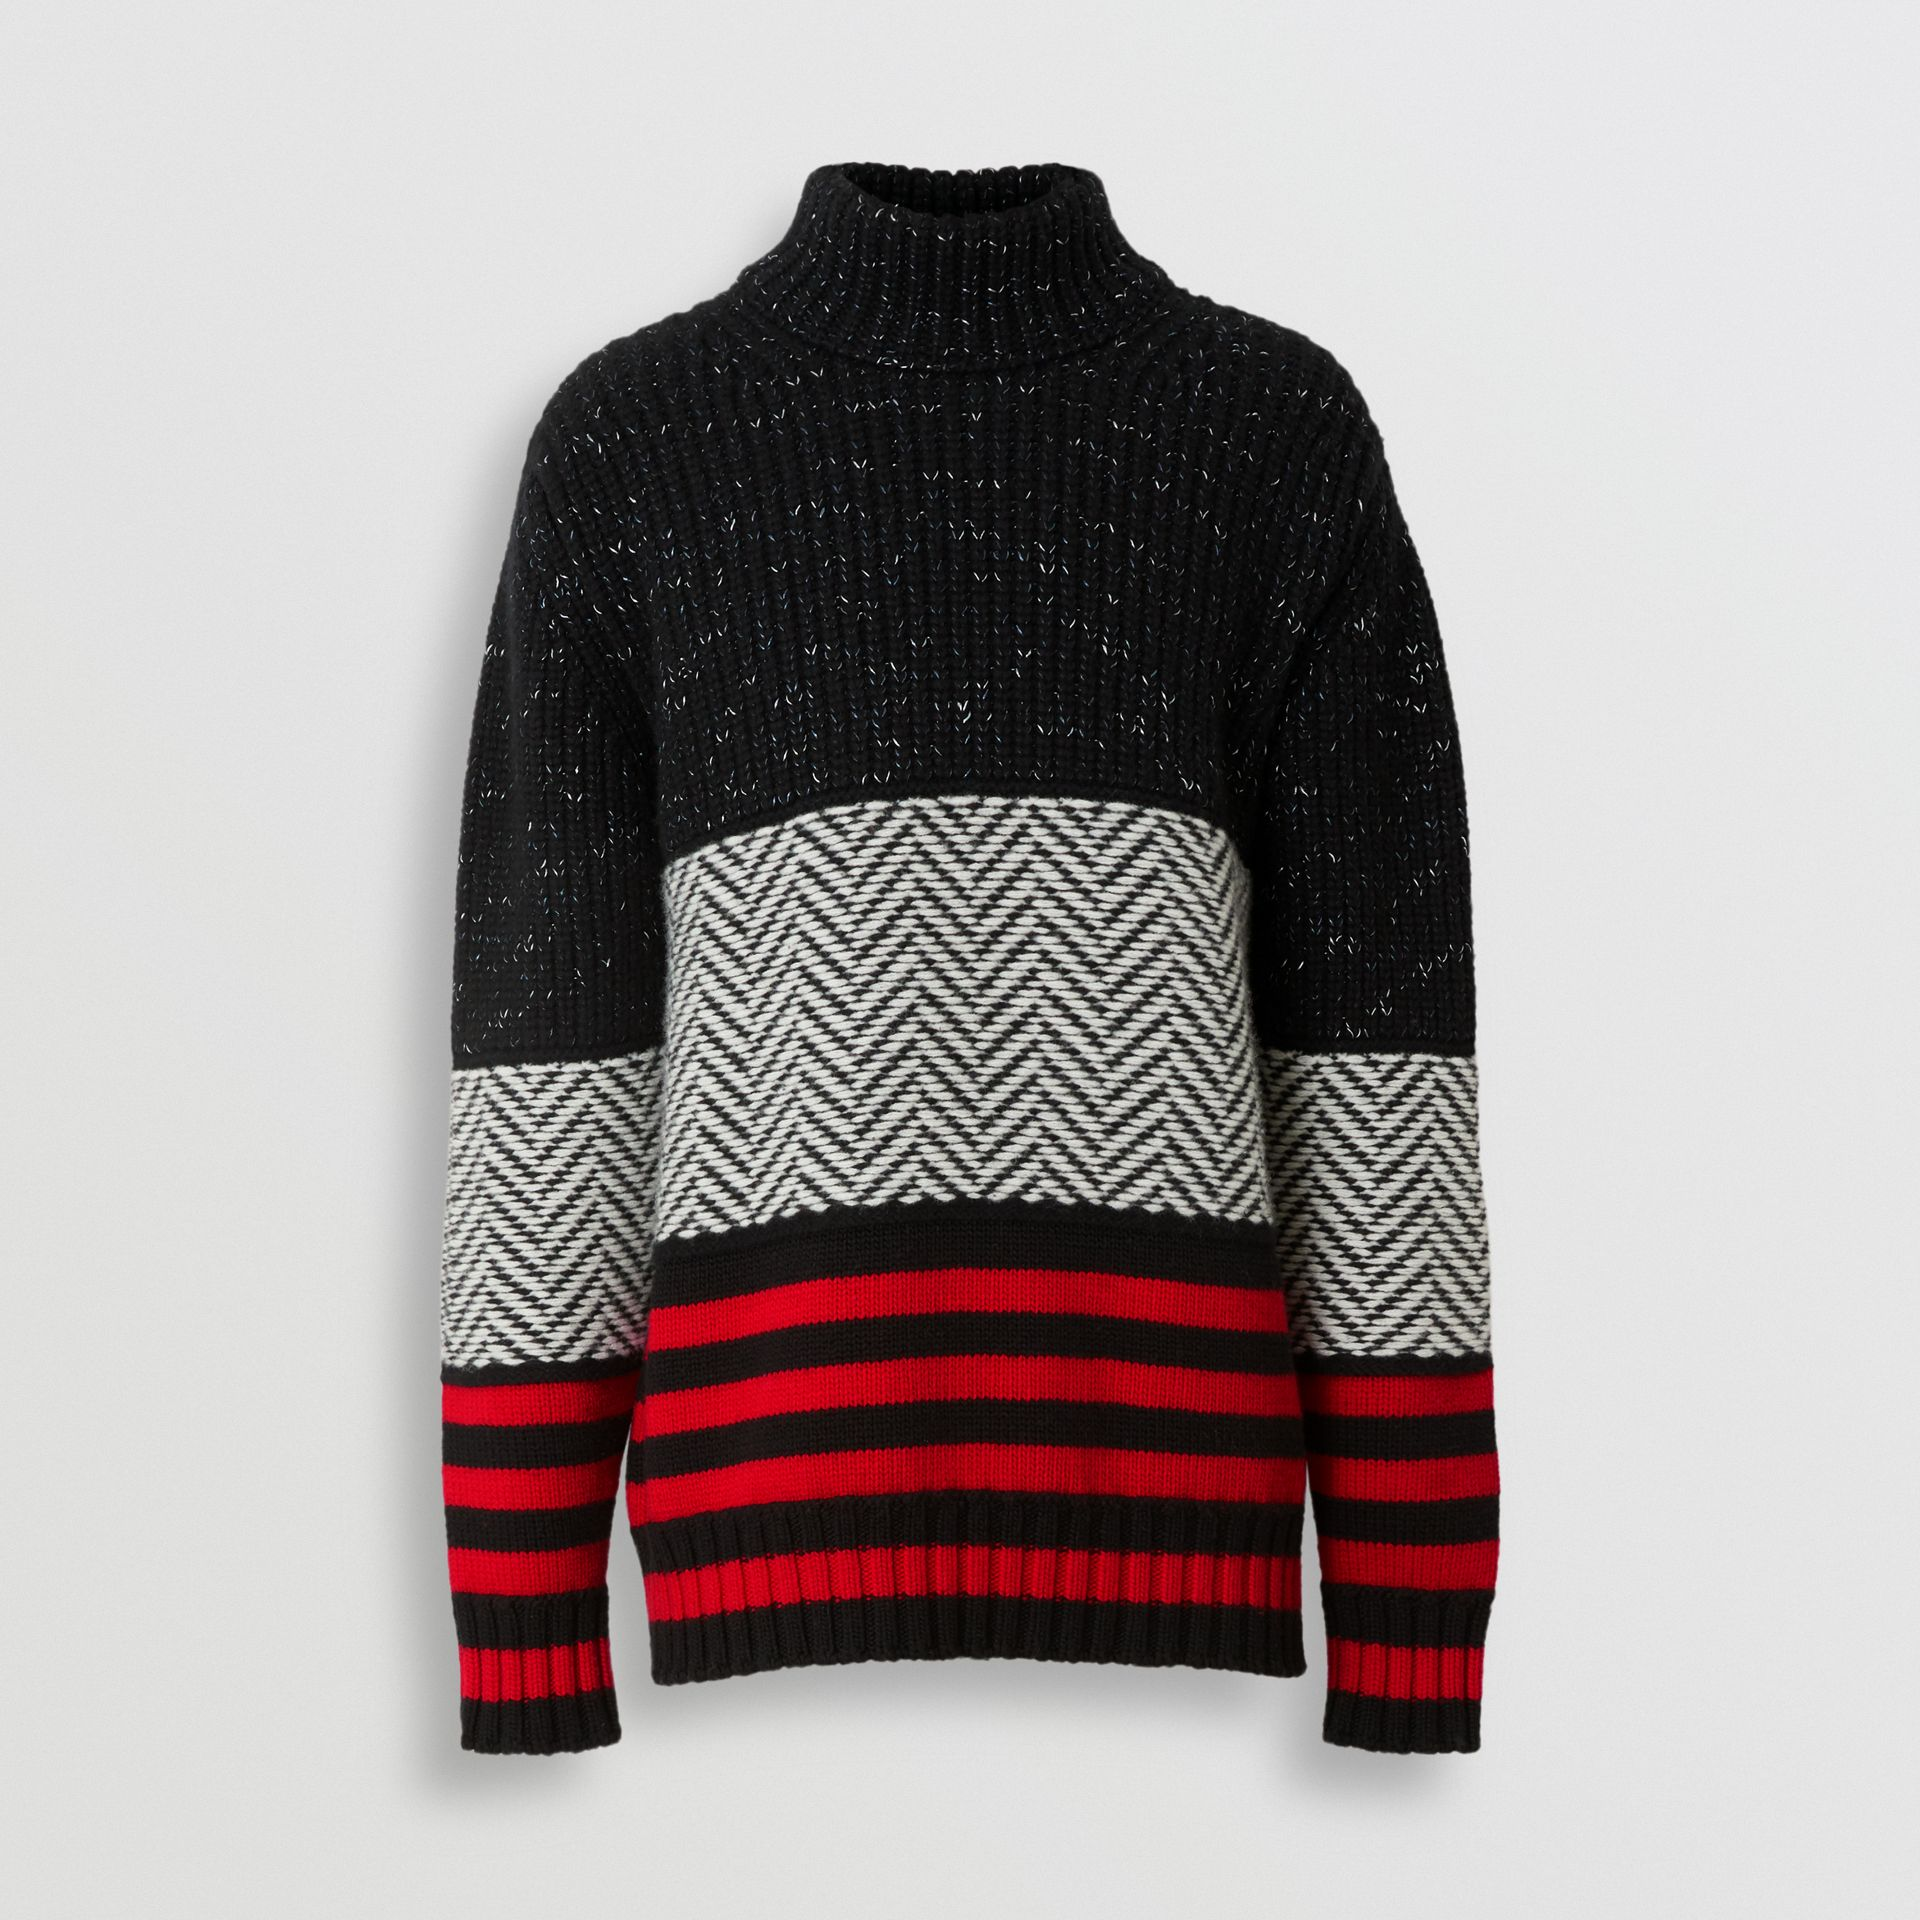 Contrast Knit Wool Cashmere Blend Sweater in Black - Men | Burberry Hong Kong - gallery image 3